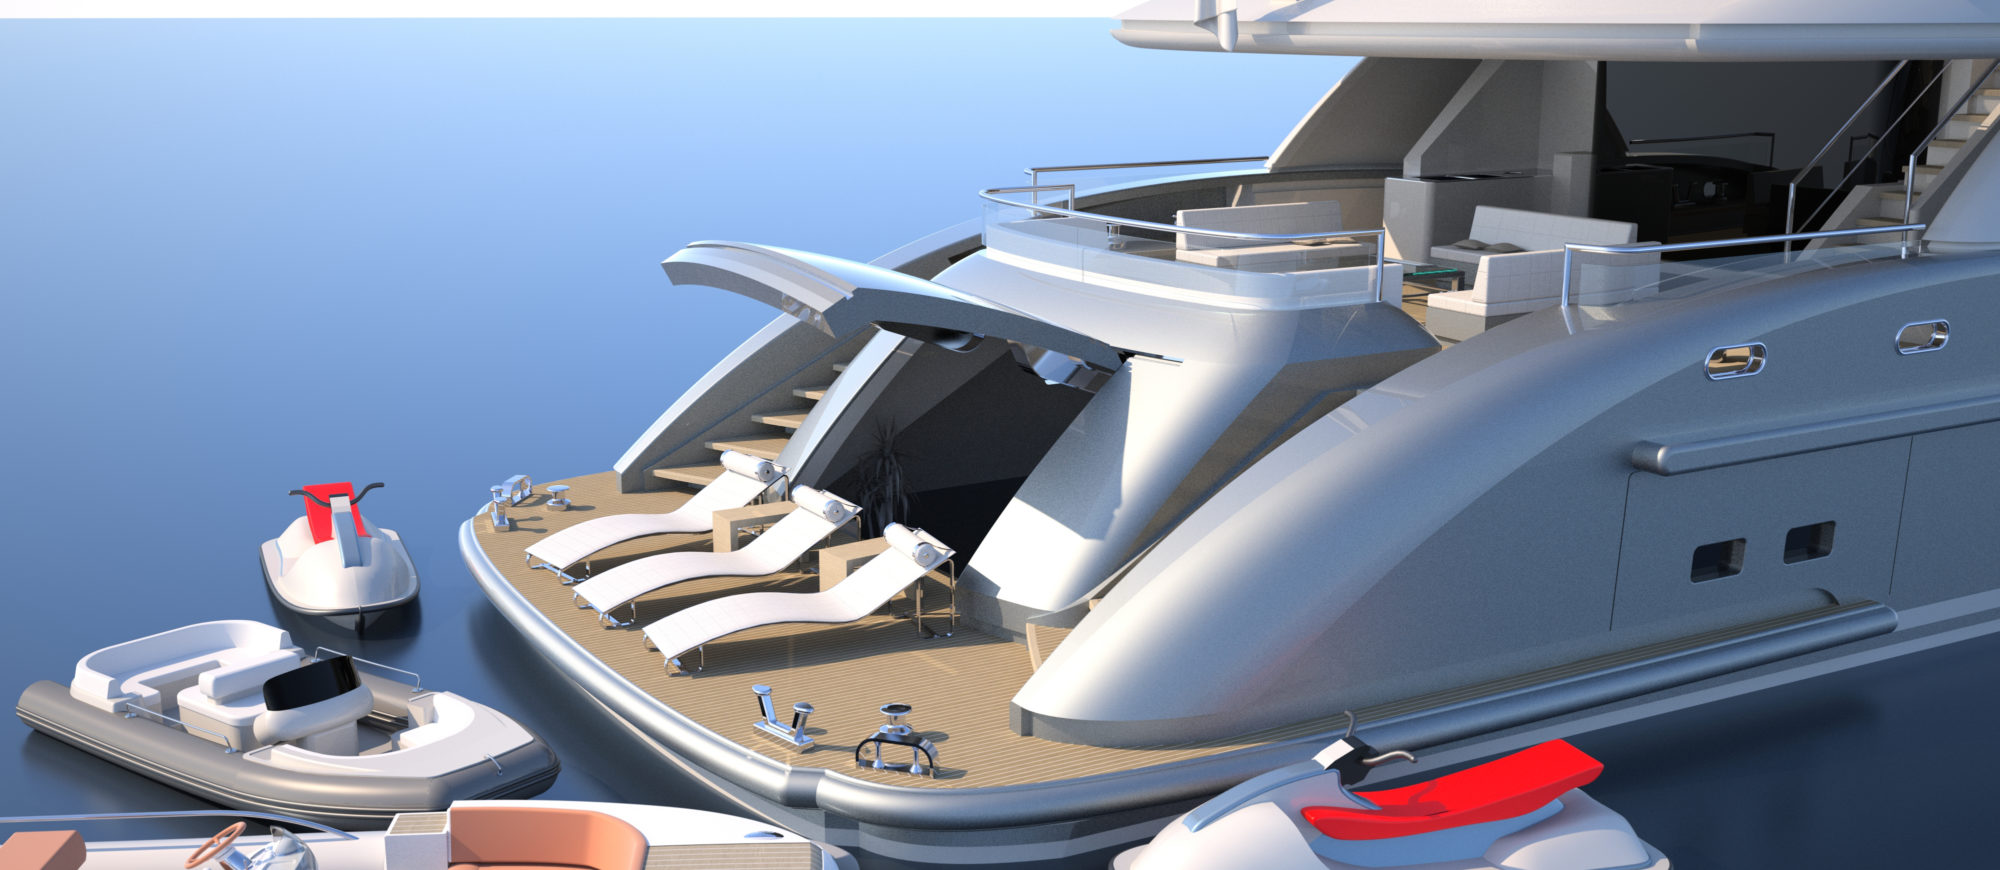 Conrad C166 Superyacht Concept Vallicelli Visualisation Aft Garage Beach Club 1